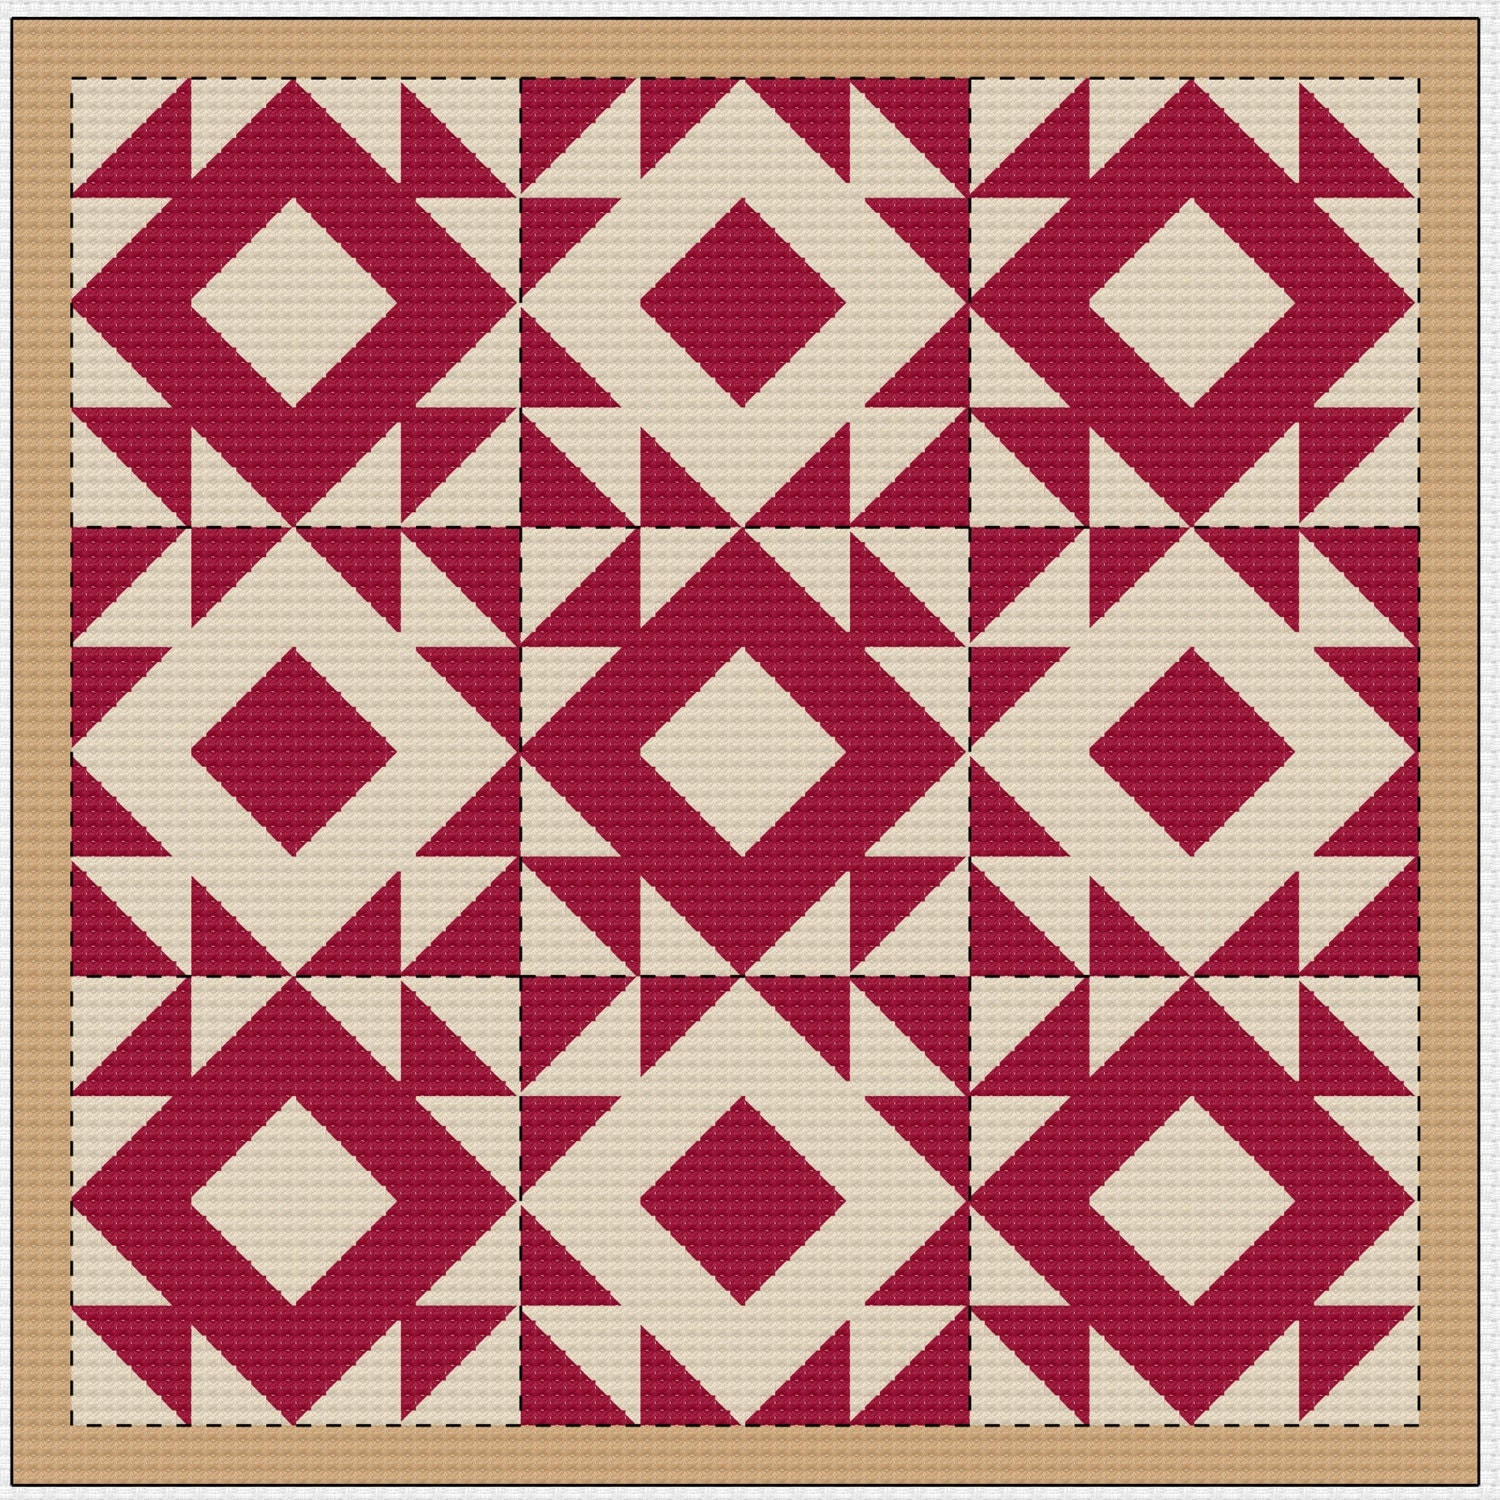 Quilt Patterns Cross Stitch : Cross Stitch Pattern Quilt Block Mosaic Old Red